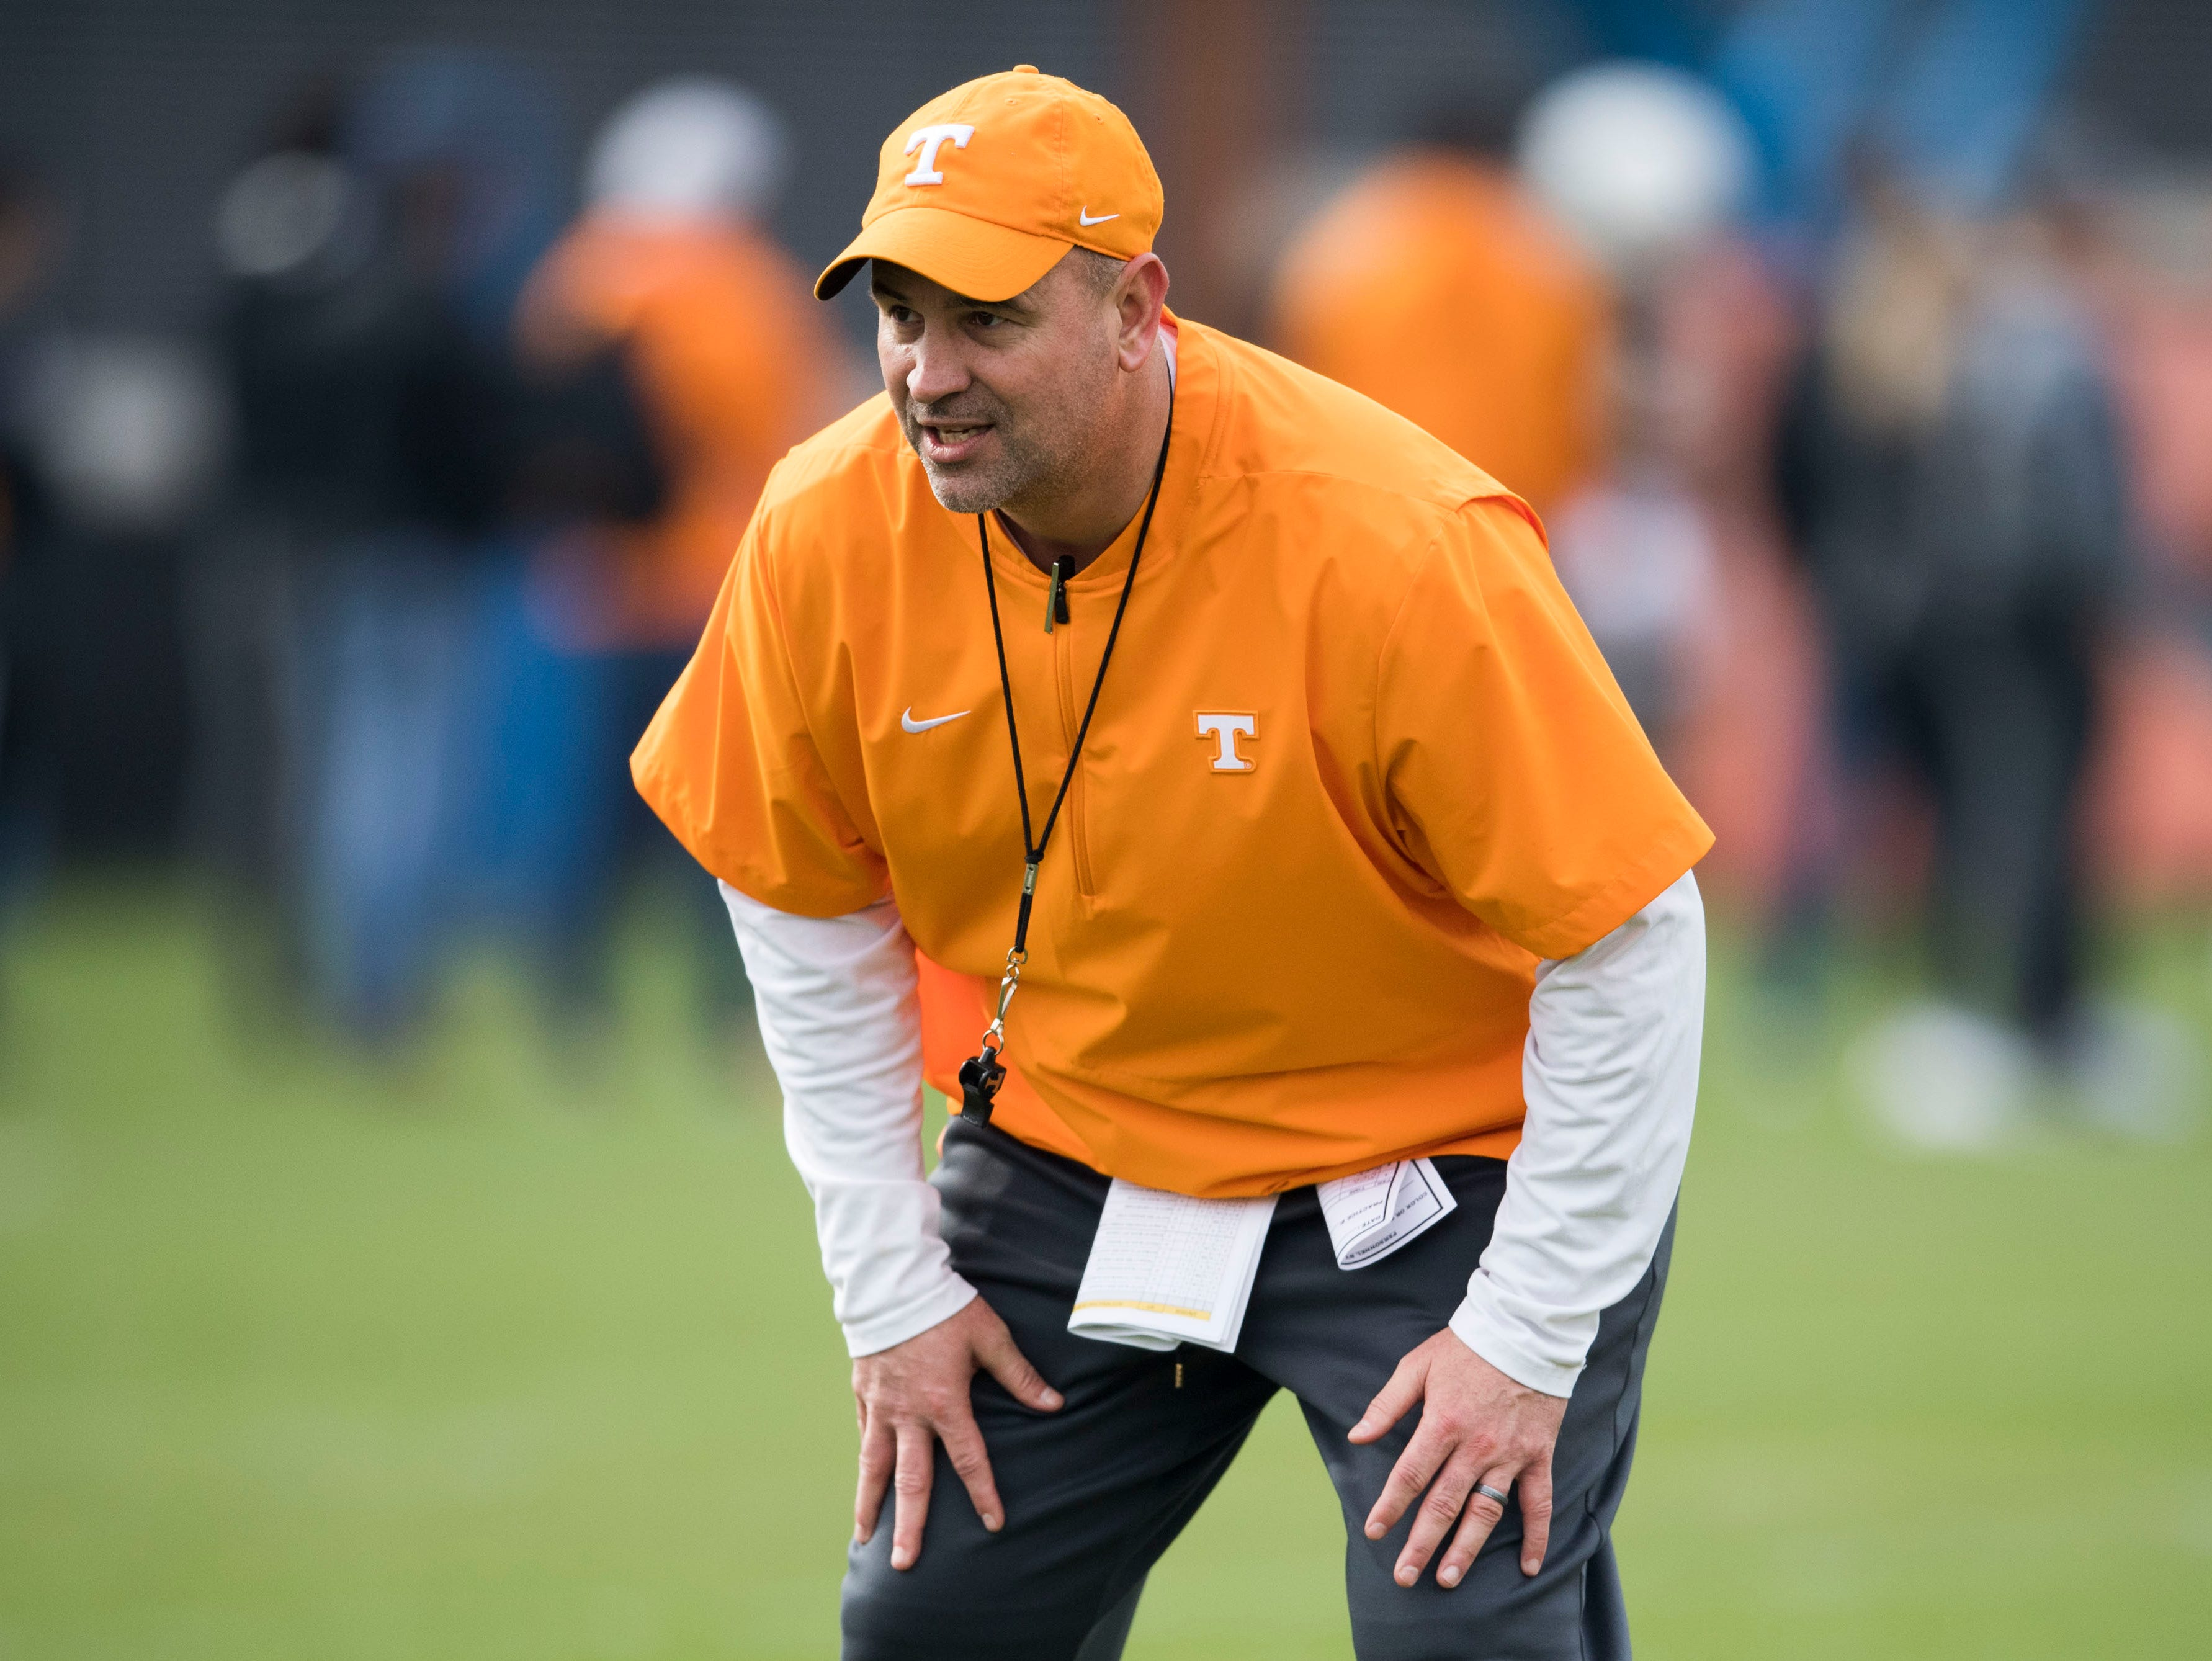 Tennessee head coach Jeremy Pruitt watches during a Tennessee Vols football spring practice Saturday, March 9, 2019.